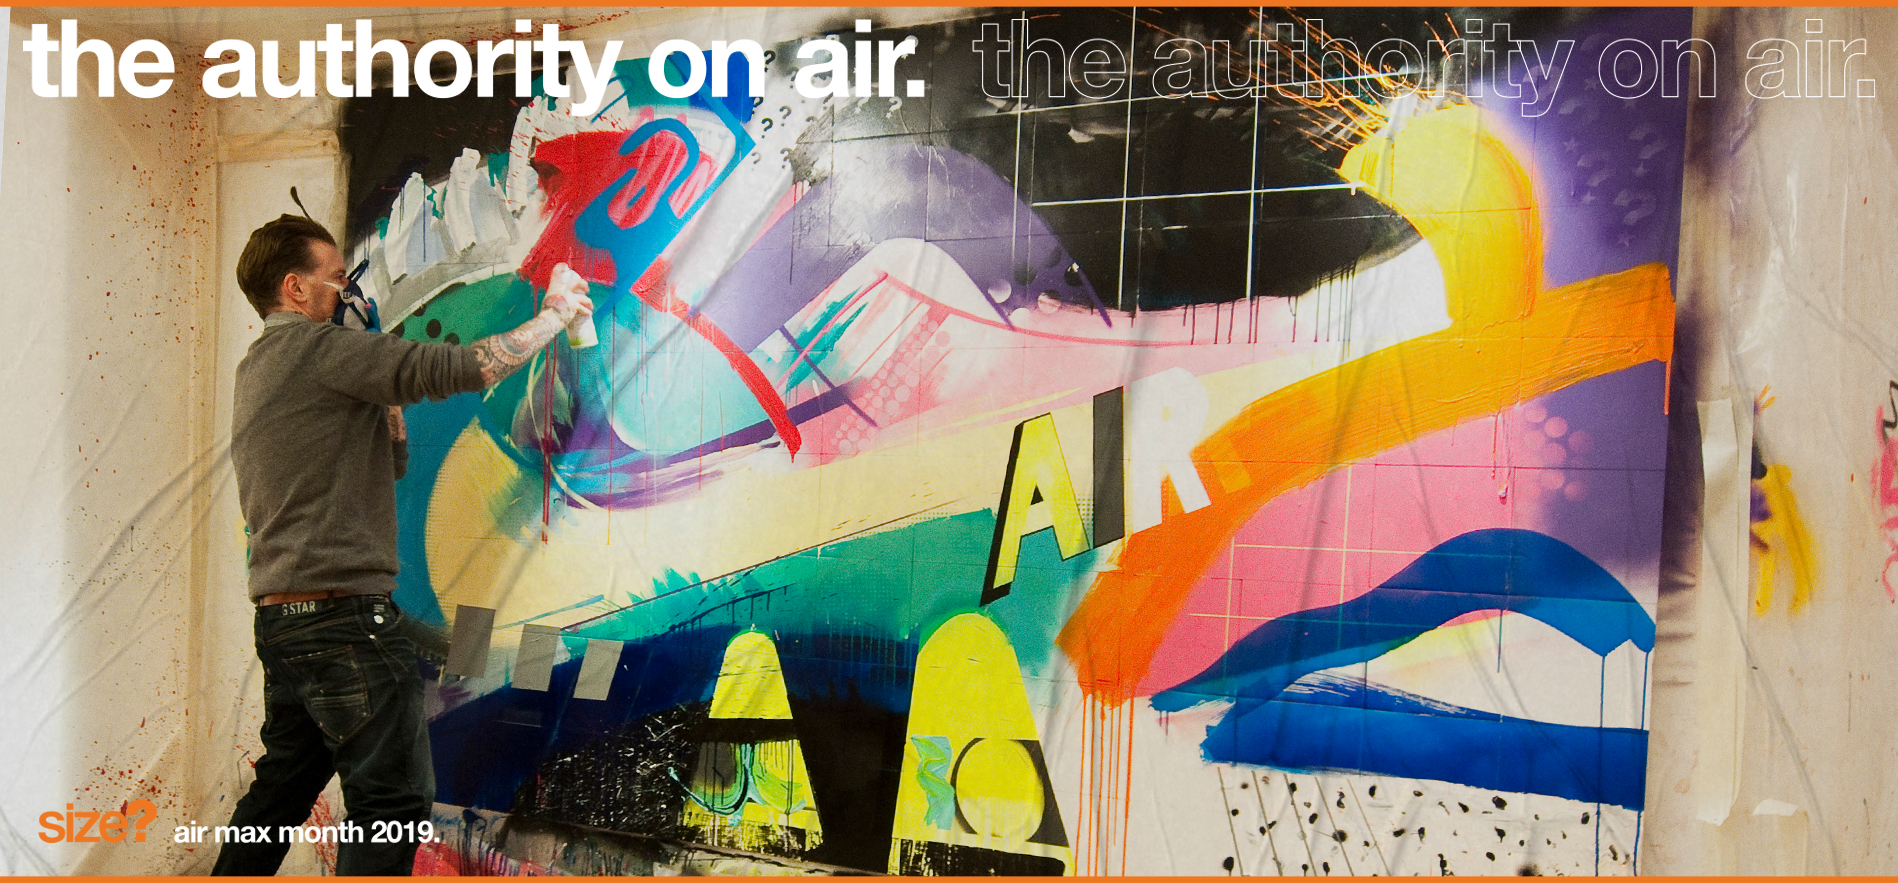 the authority on air: Air Stab 'Dave White'